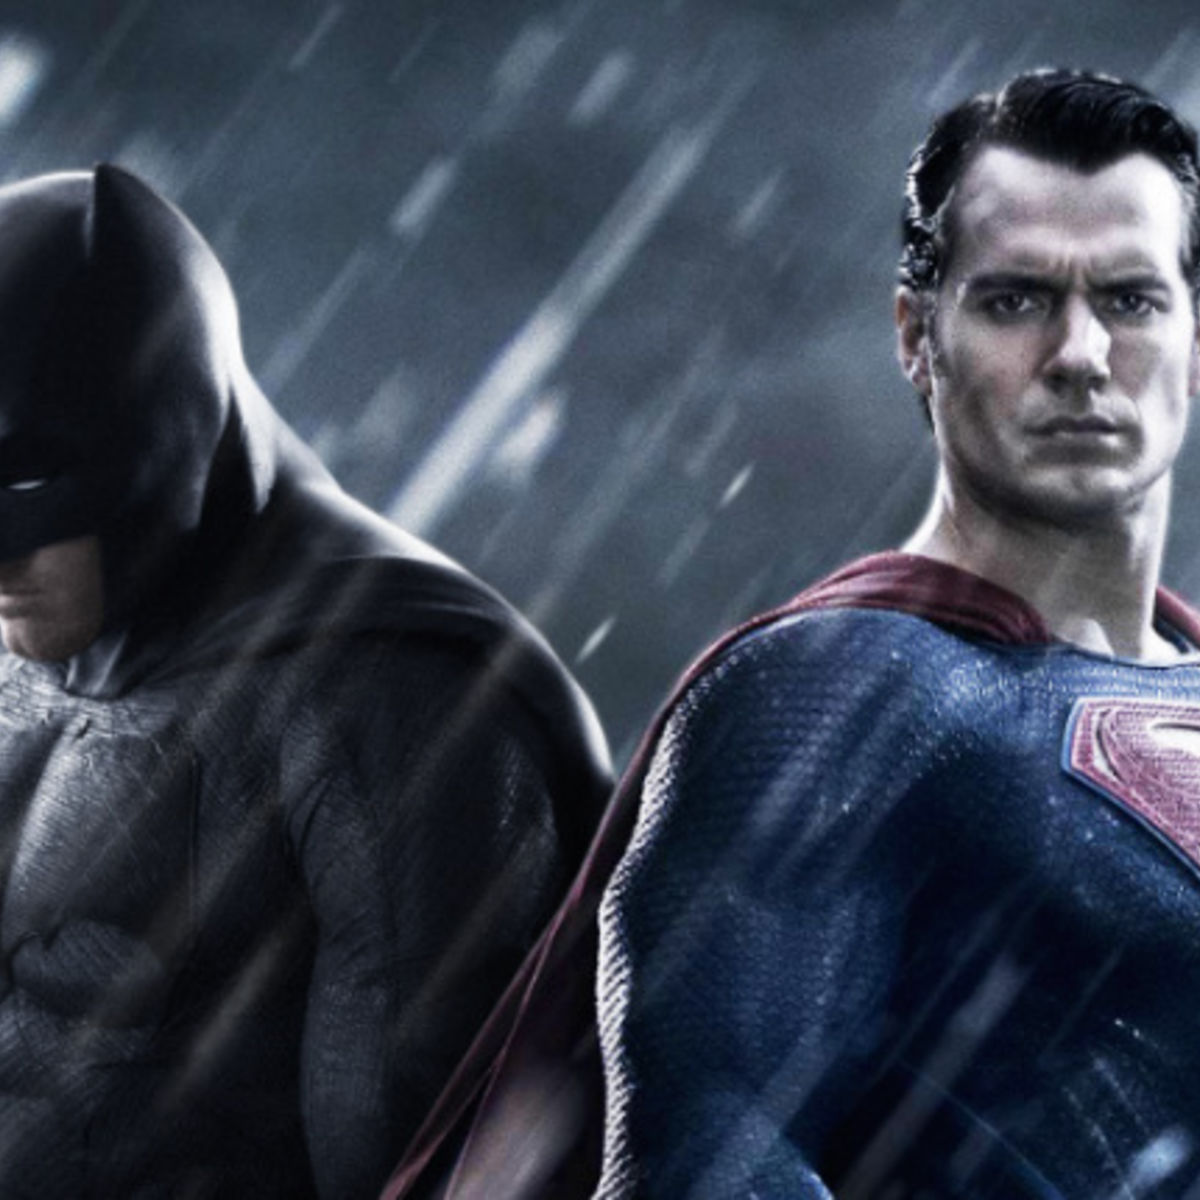 c3699692-8418-4543-9ba2-5927c8e75bef-snyder-teases-again-did-he-just-reveal-another-batsuit-for-batman-vs-superman_0.jpeg